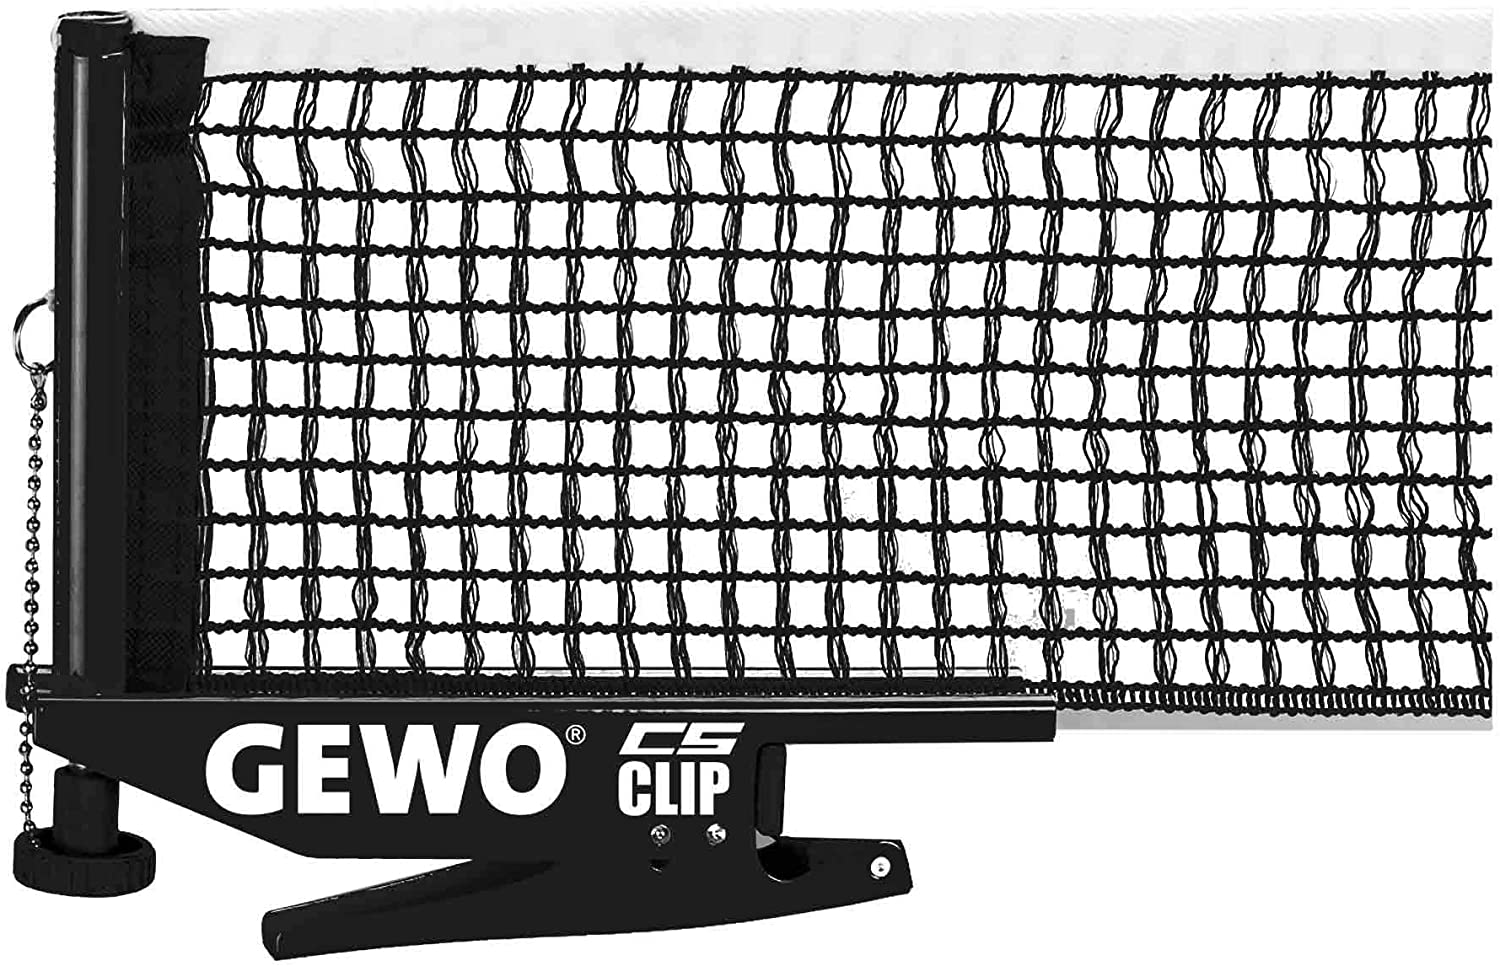 GEWO Chicago Mall Unisex – Adults Net A surprise price is realized CS Table Clip Tennis Nets ITTF Black